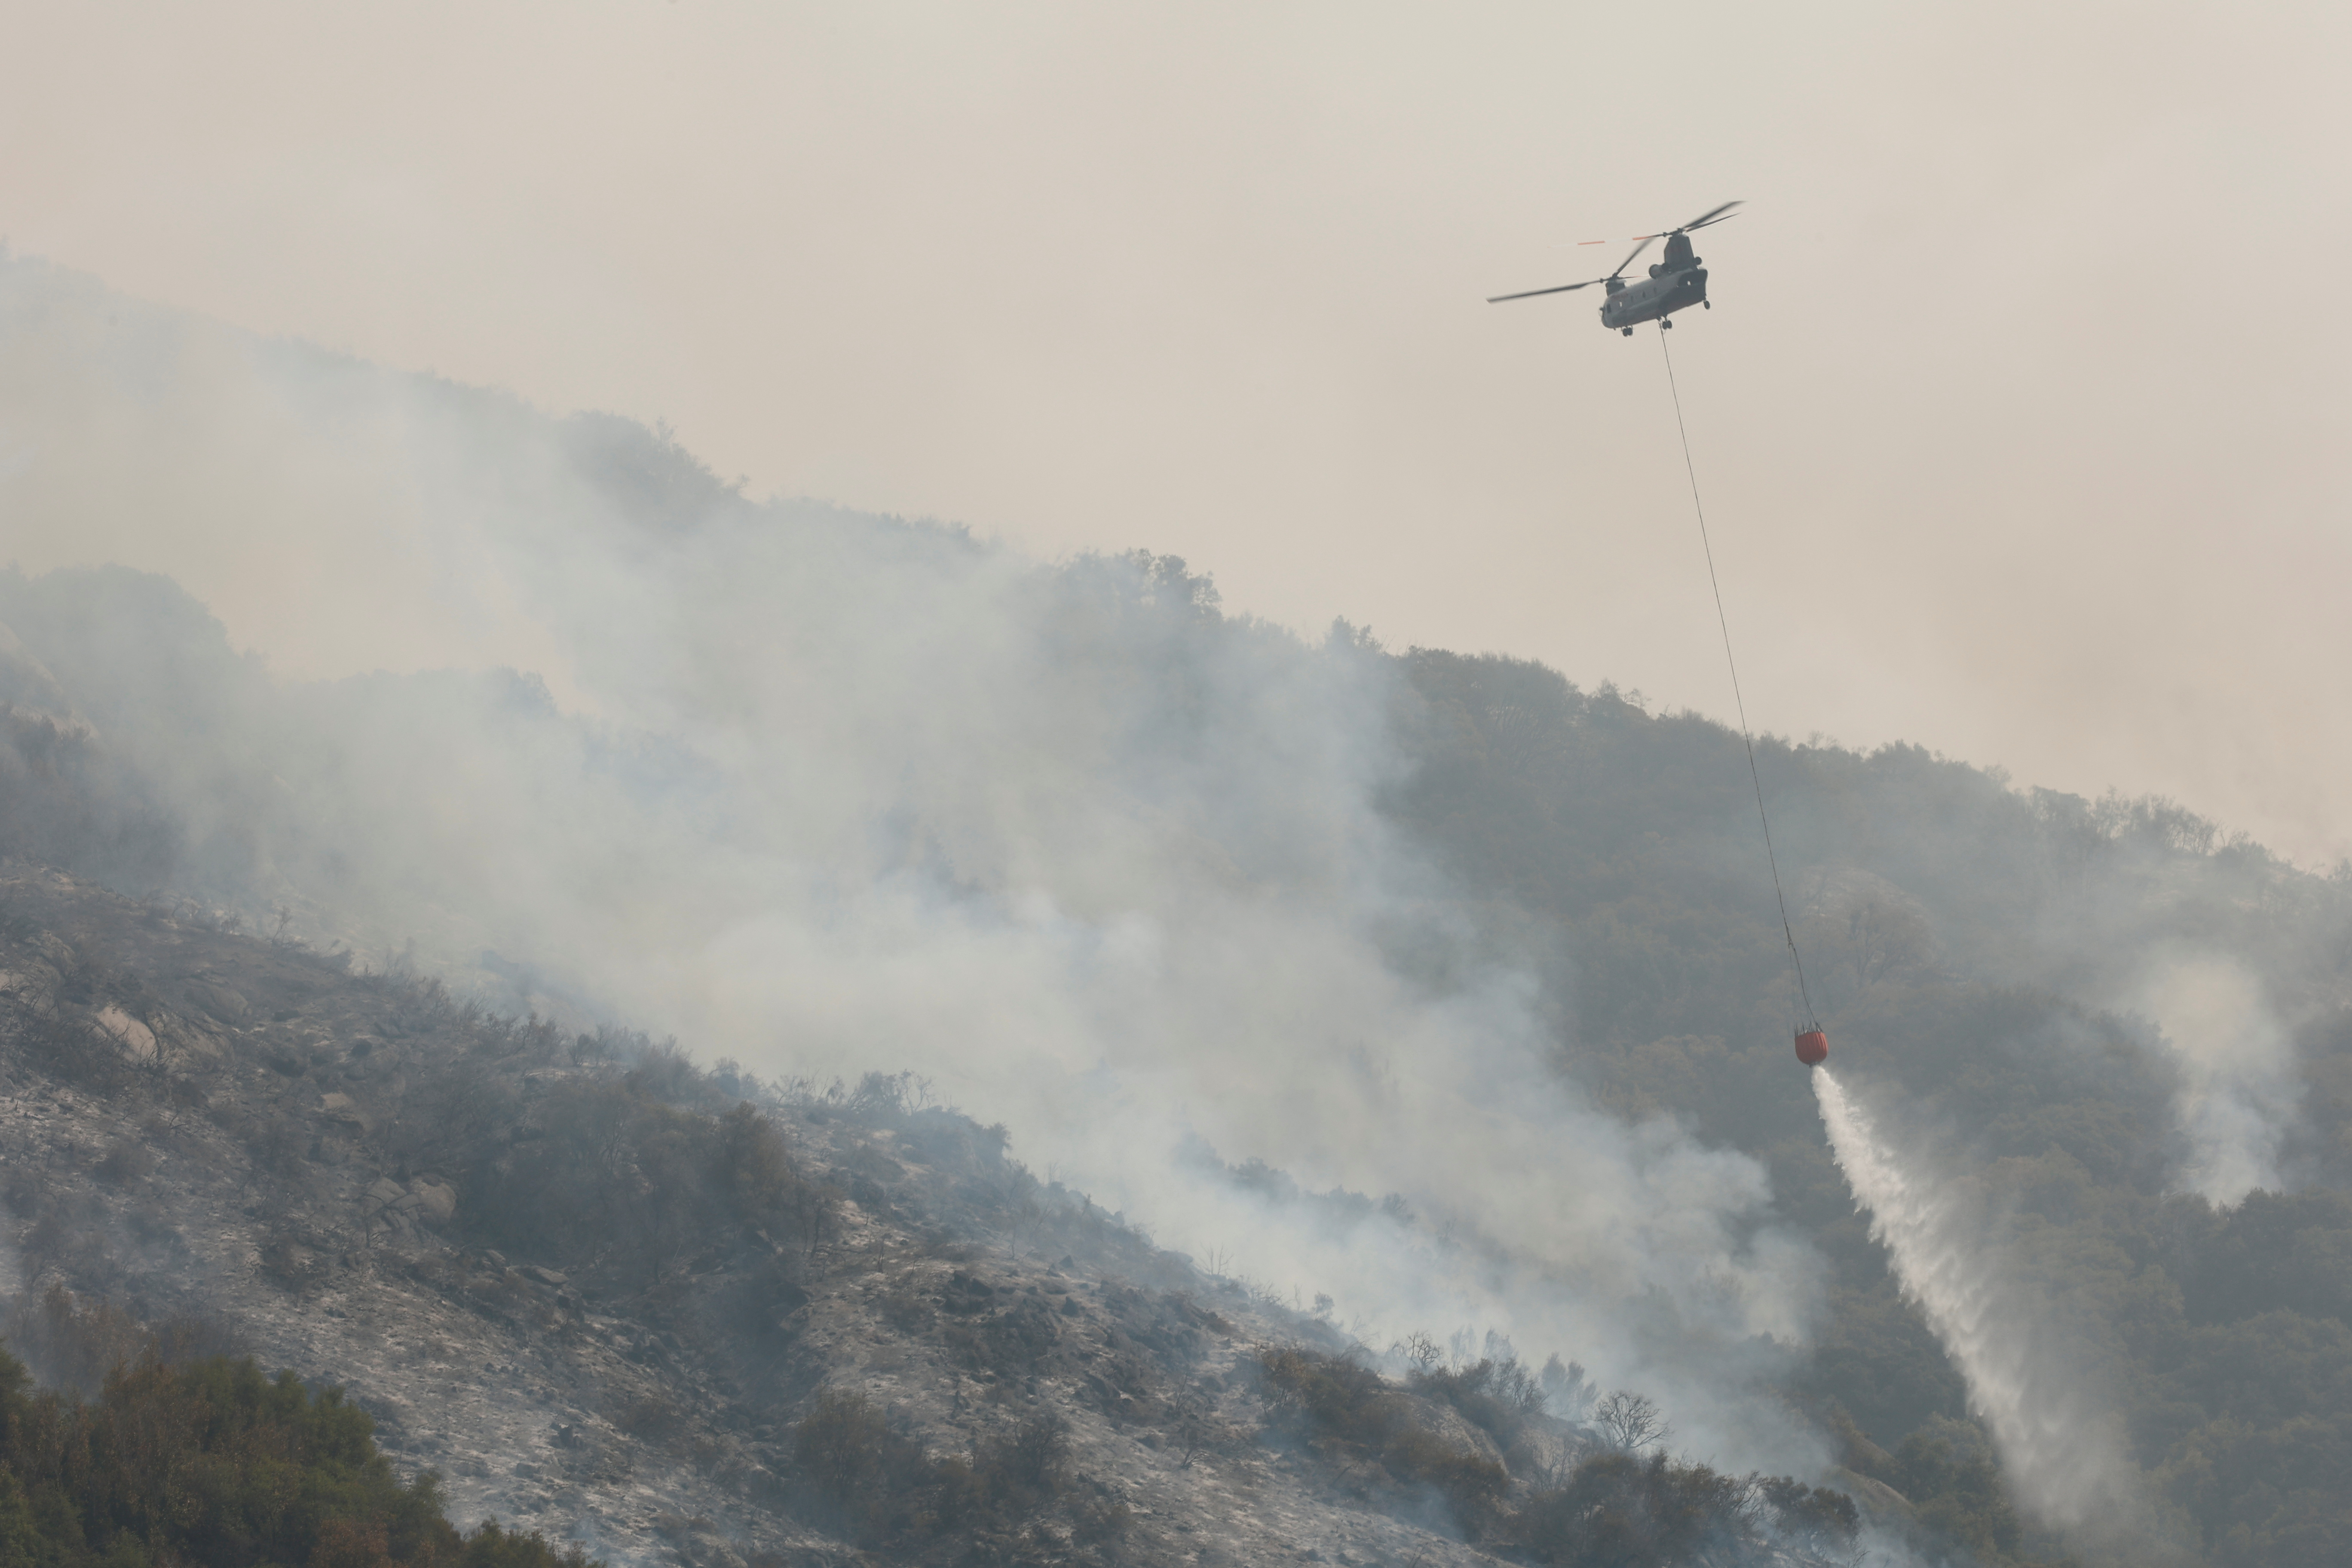 A firefighting helicopter drops water on hotspots burning in the KNP Complex fire, at Sequoia National Park in Tulare County, California, U.S. September 18, 2021. REUTERS/Fred Greaves